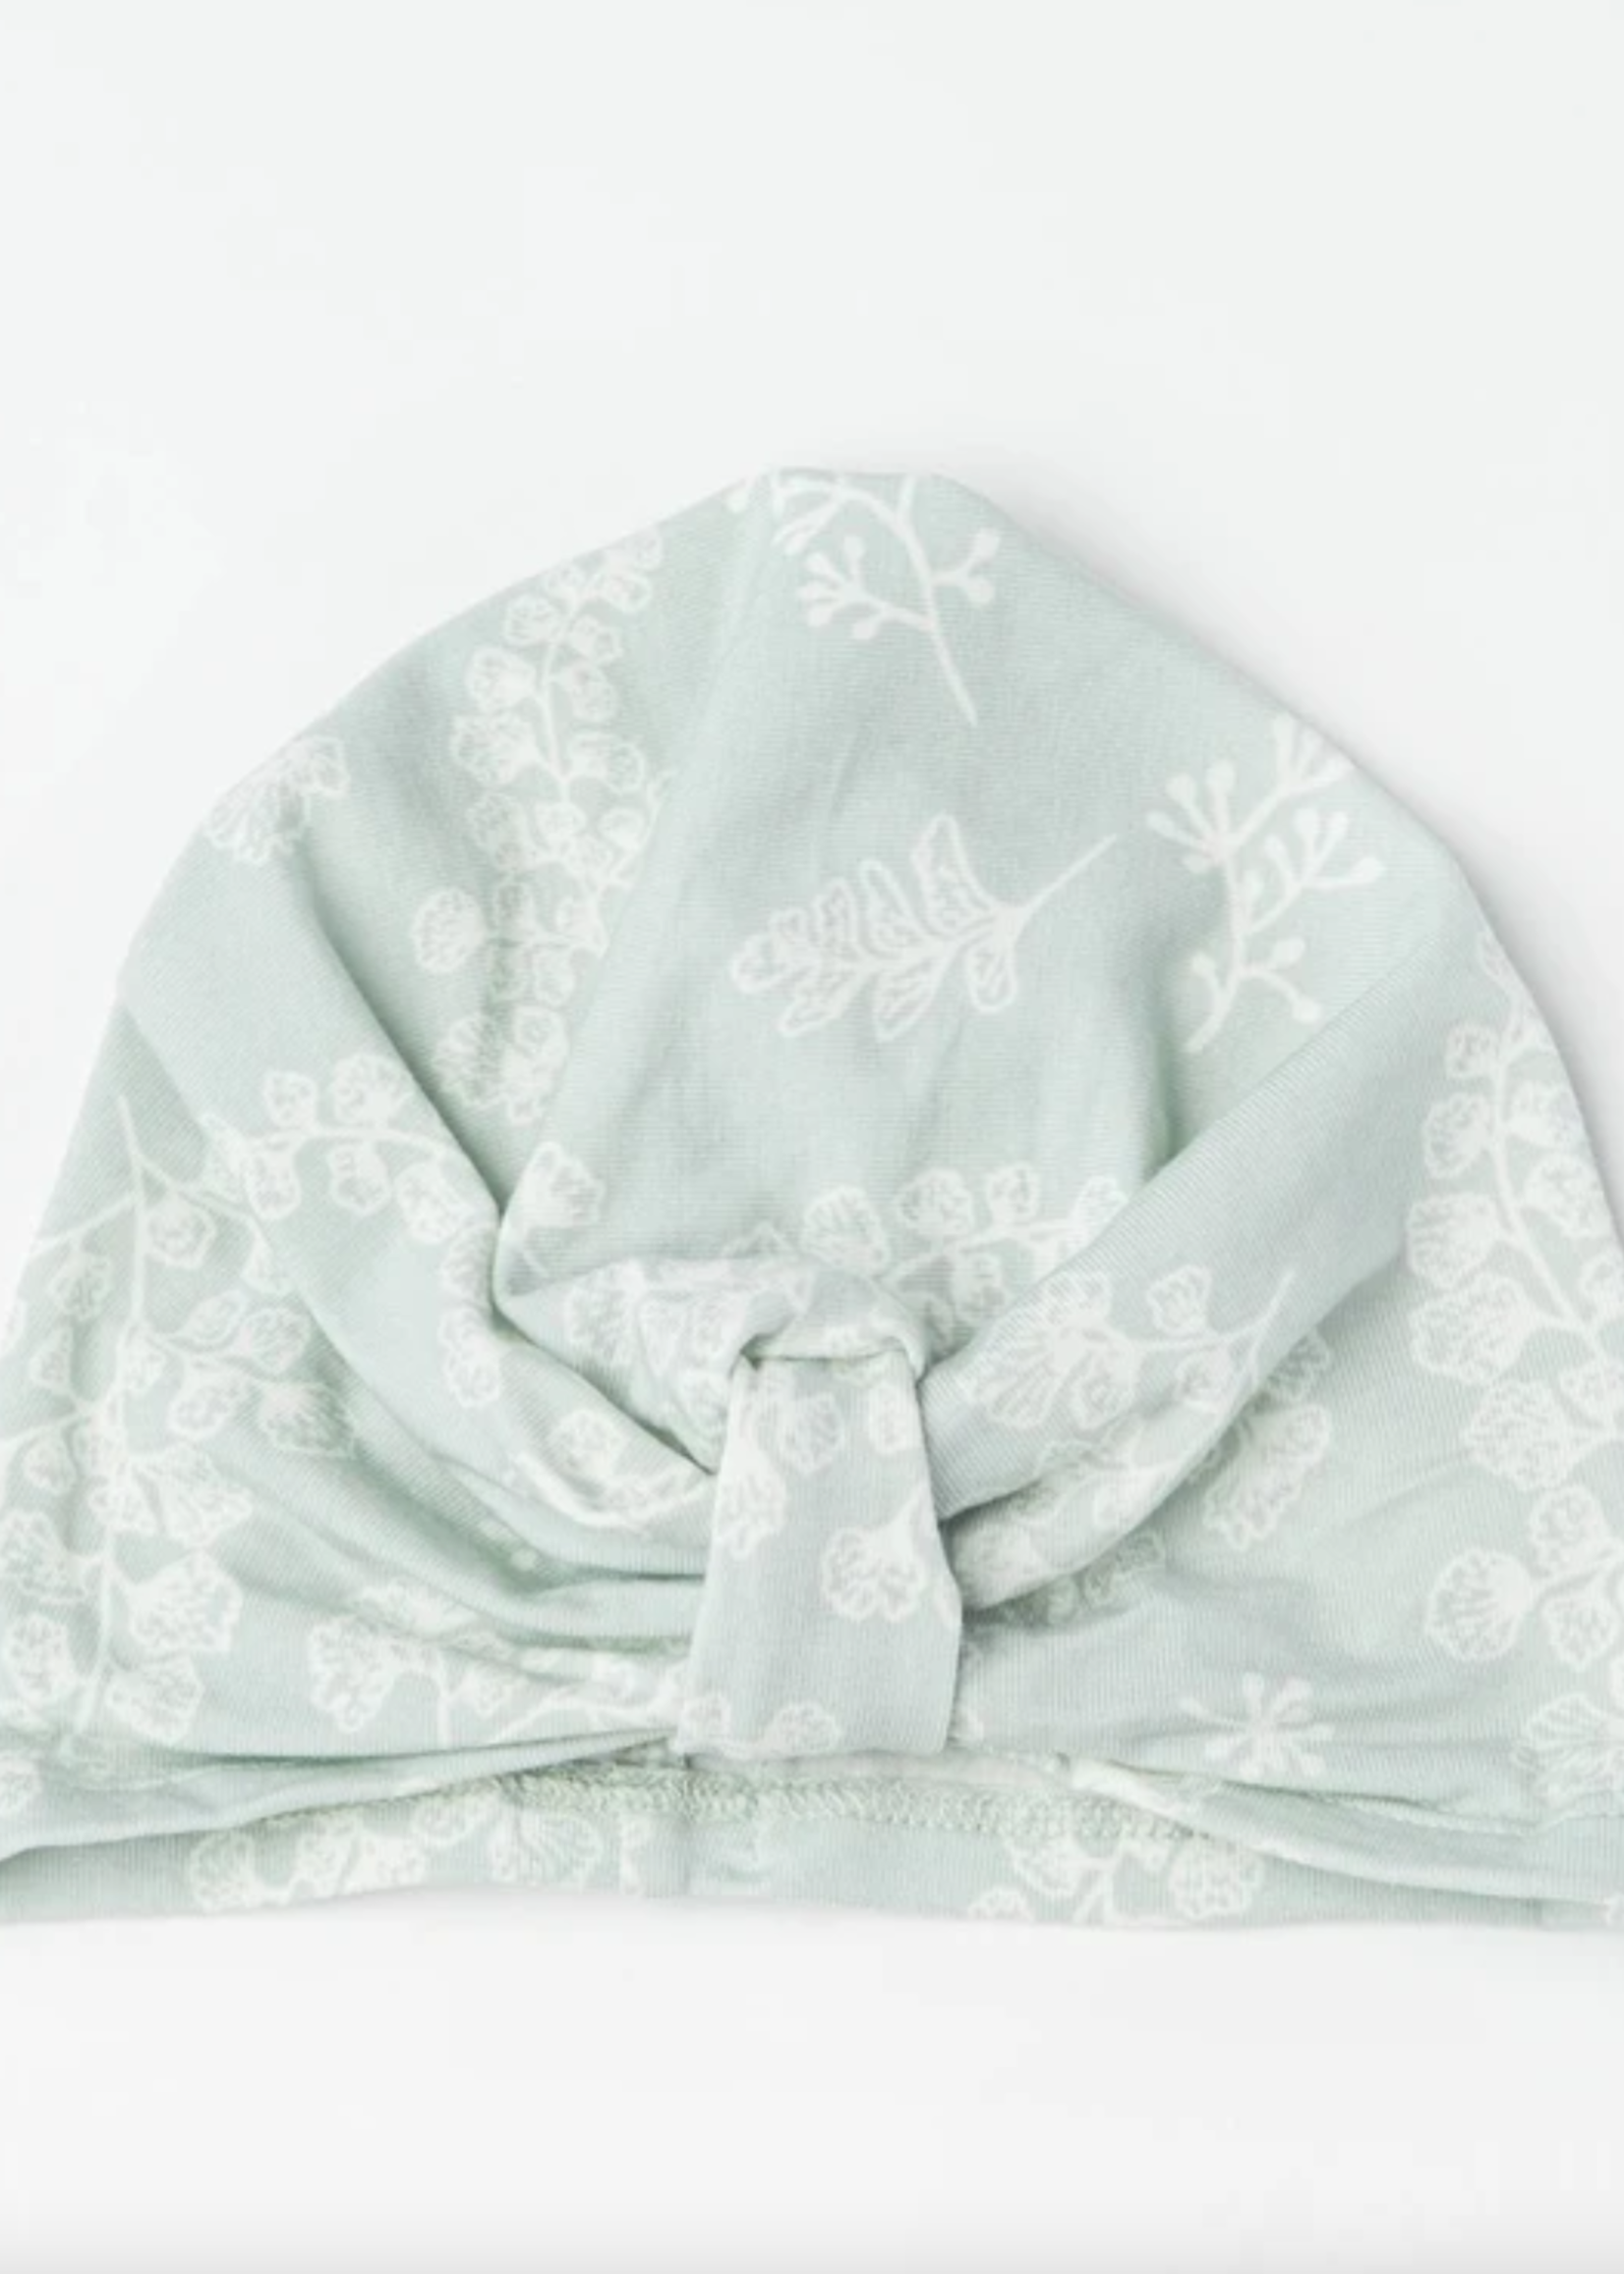 Elitaire Petite Girl's Turban in Fern - 0 to 6M